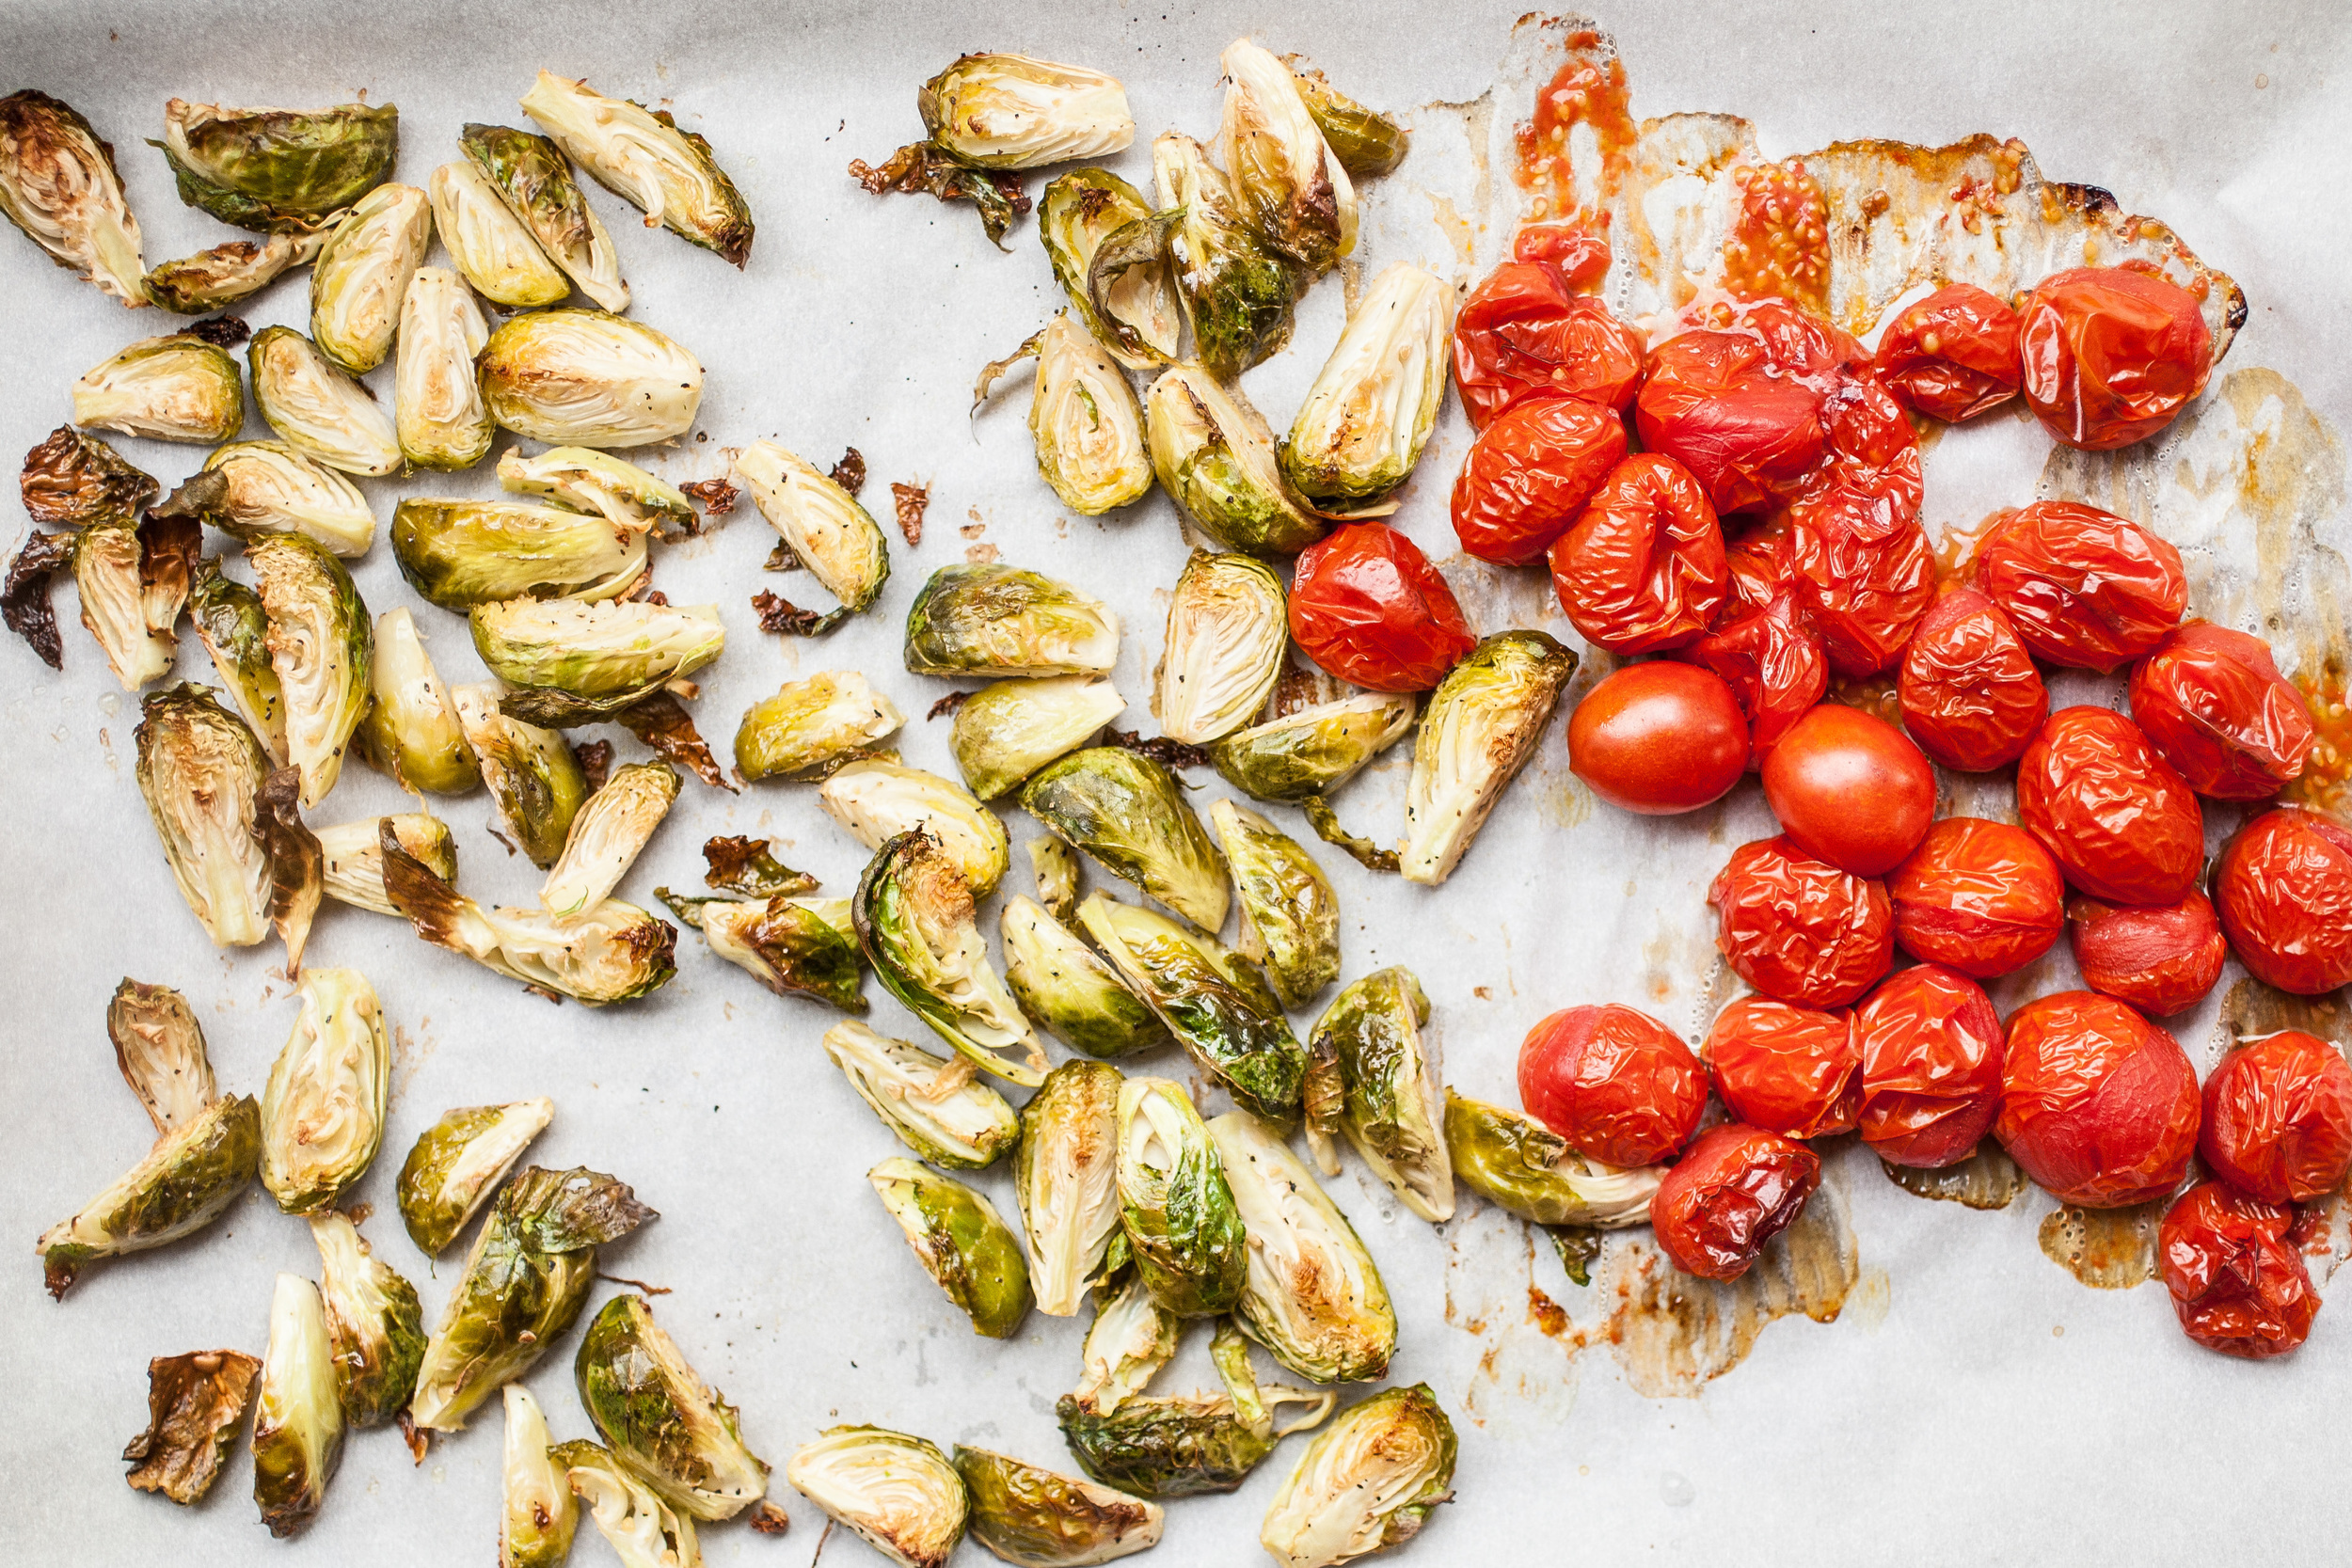 Produce On Parade - Roasted Brussels Sprouts & Bursted Cherry Tomato Spaghetti - This is an easy, hands off meal that's done in 45 minutes top to bottom. Sweet, roasted Brussels sprouts and tart, oven-bursted cherry tomatoes tangle with spaghetti in a cheesy, buttery sauce. Make the most of those veggies that quickly move past their prime with this delicious pasta dish!